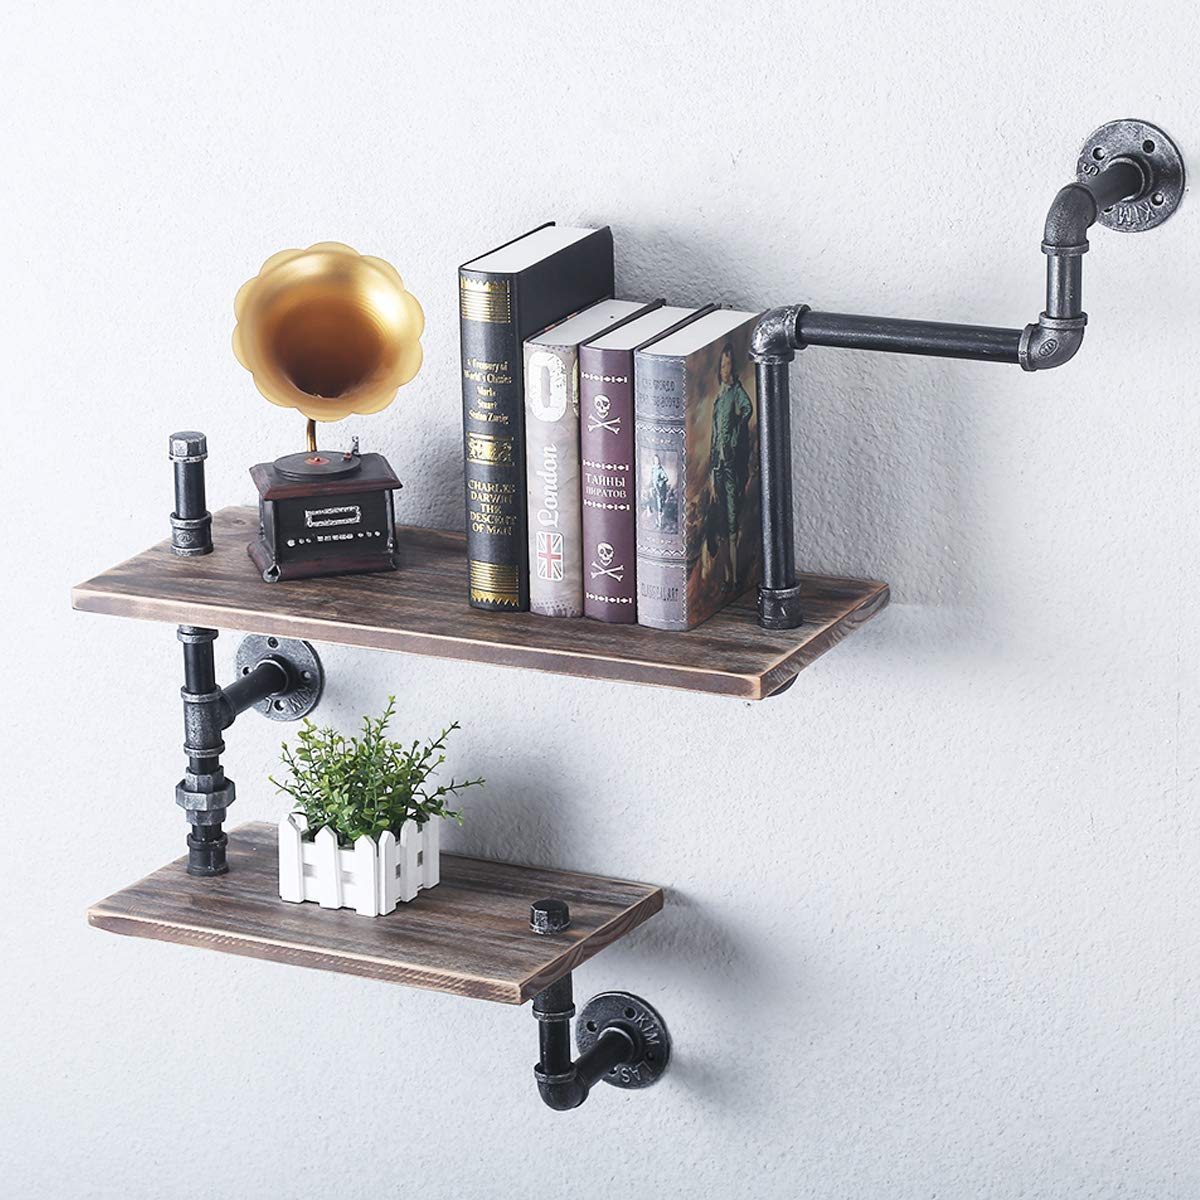 the best attitude b07fd 164c5 Reclaimed Wood & Industrial DIY Pipes Shelves Steampunk Rustic Urban  bookshelf